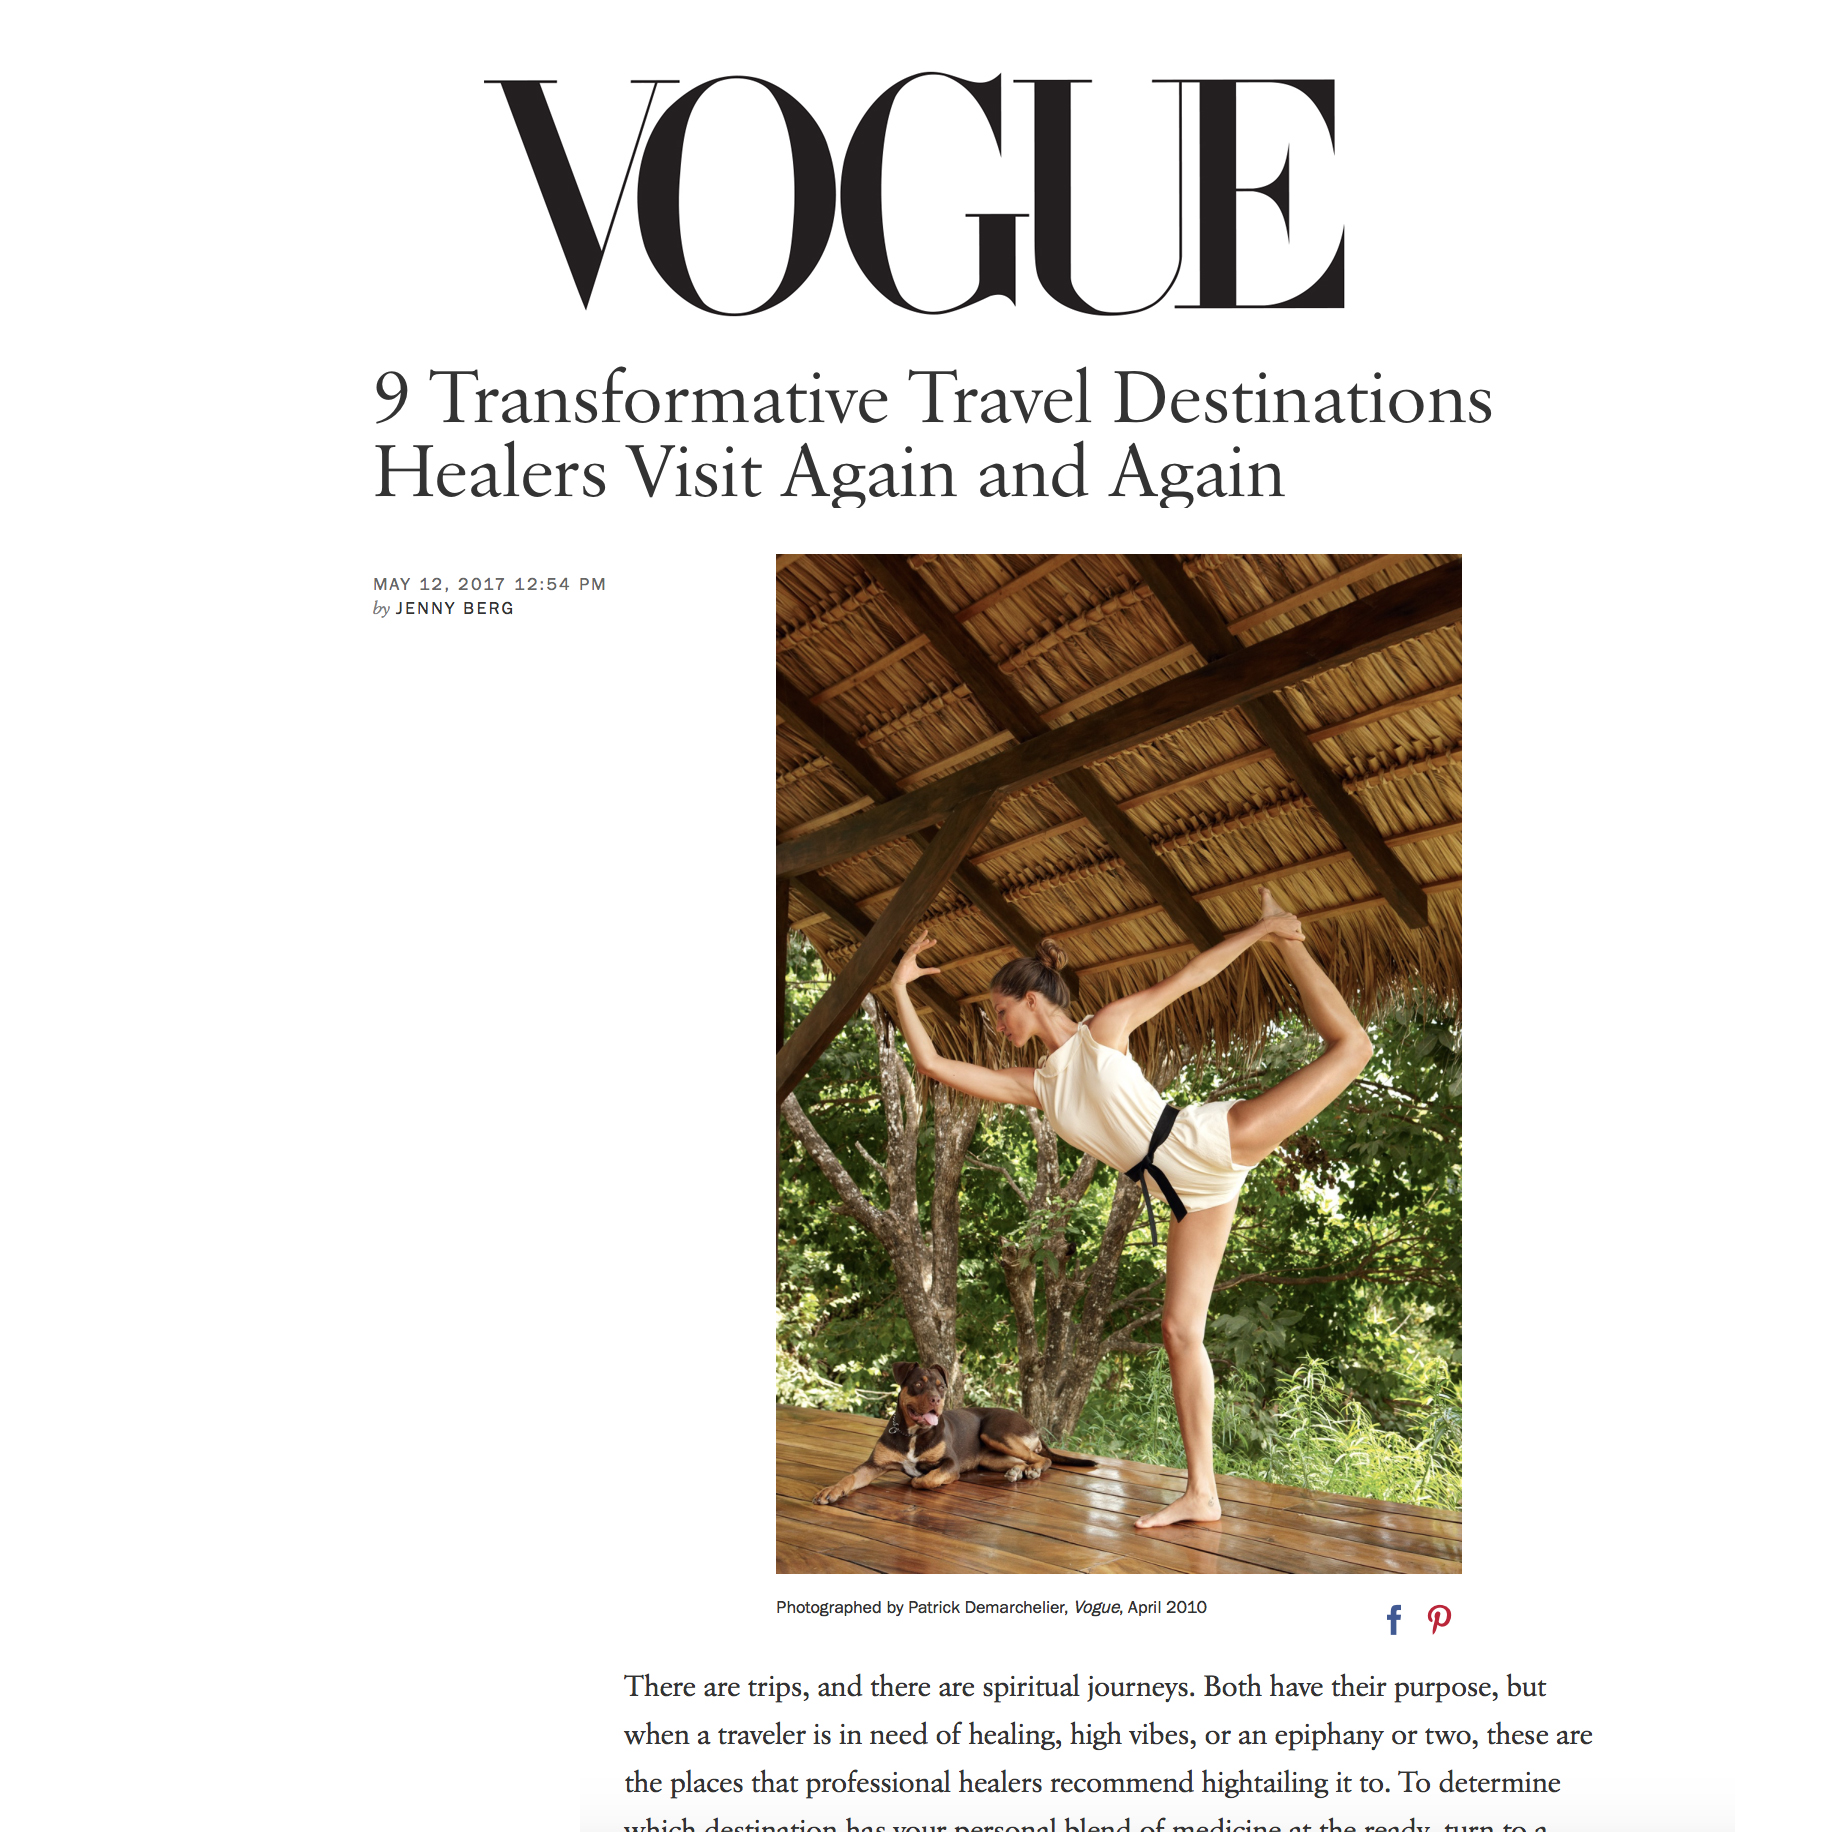 Vogue,   9 Transformative Travel Destinations Healers Visit Again and Again  , 2017